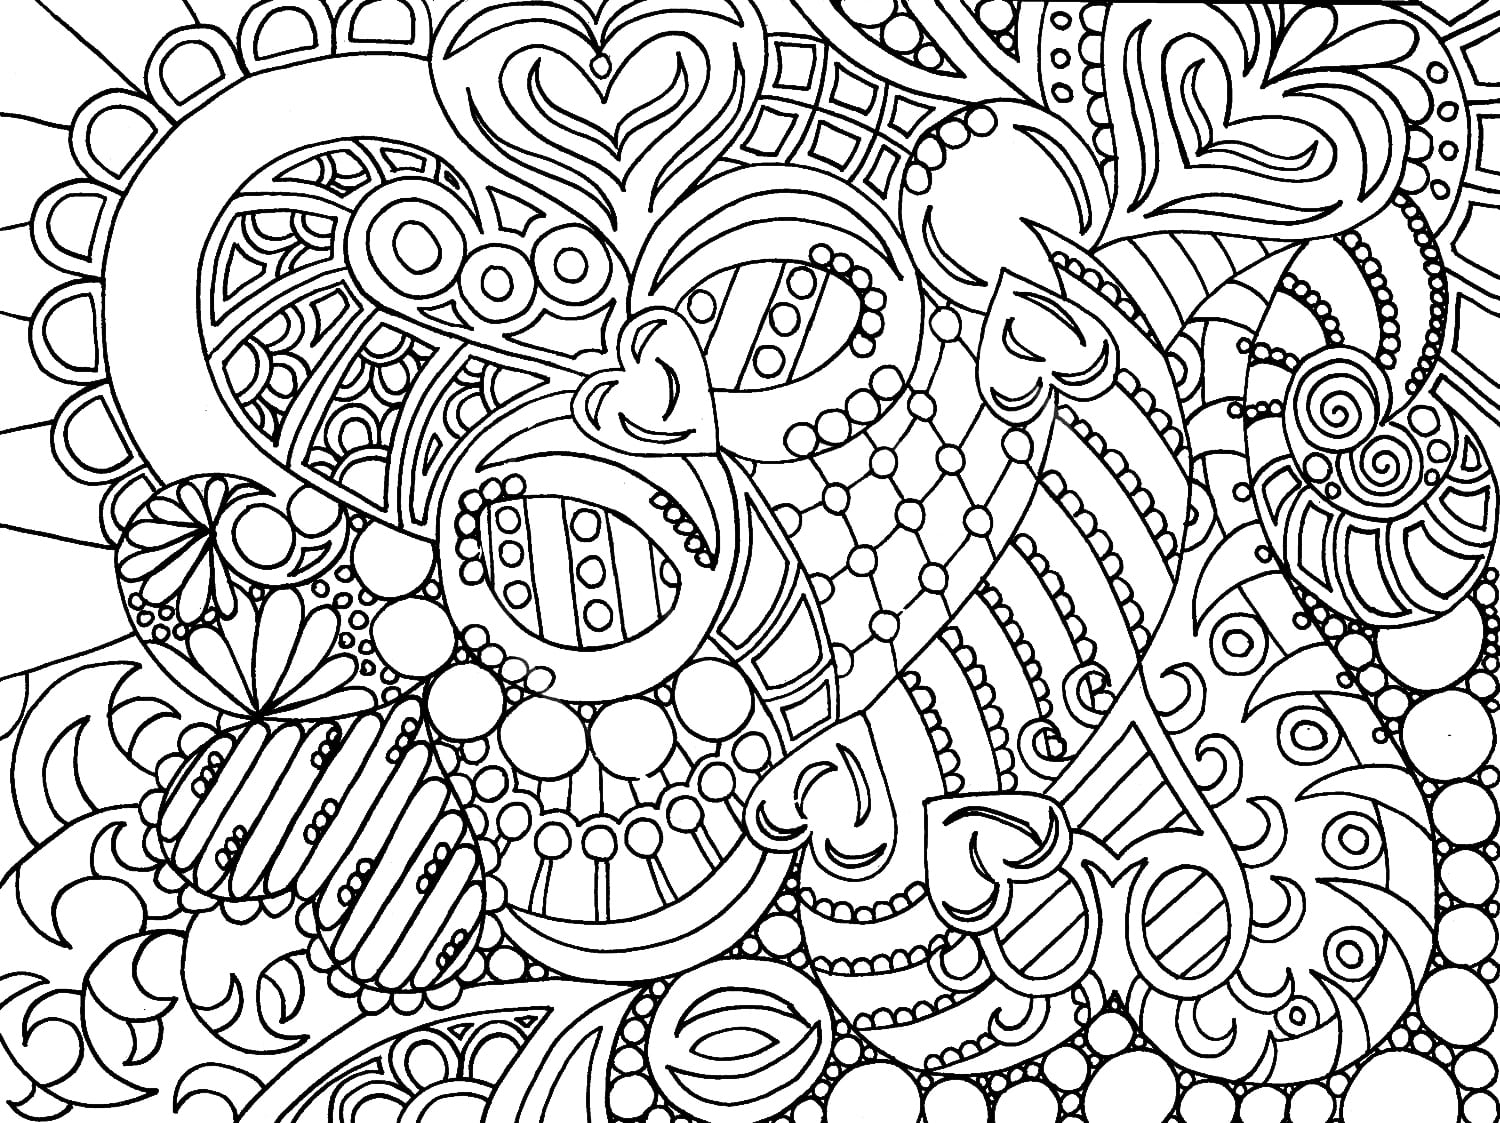 Adult Coloring Pages Online Printable Mandala Free 4862 Unknown